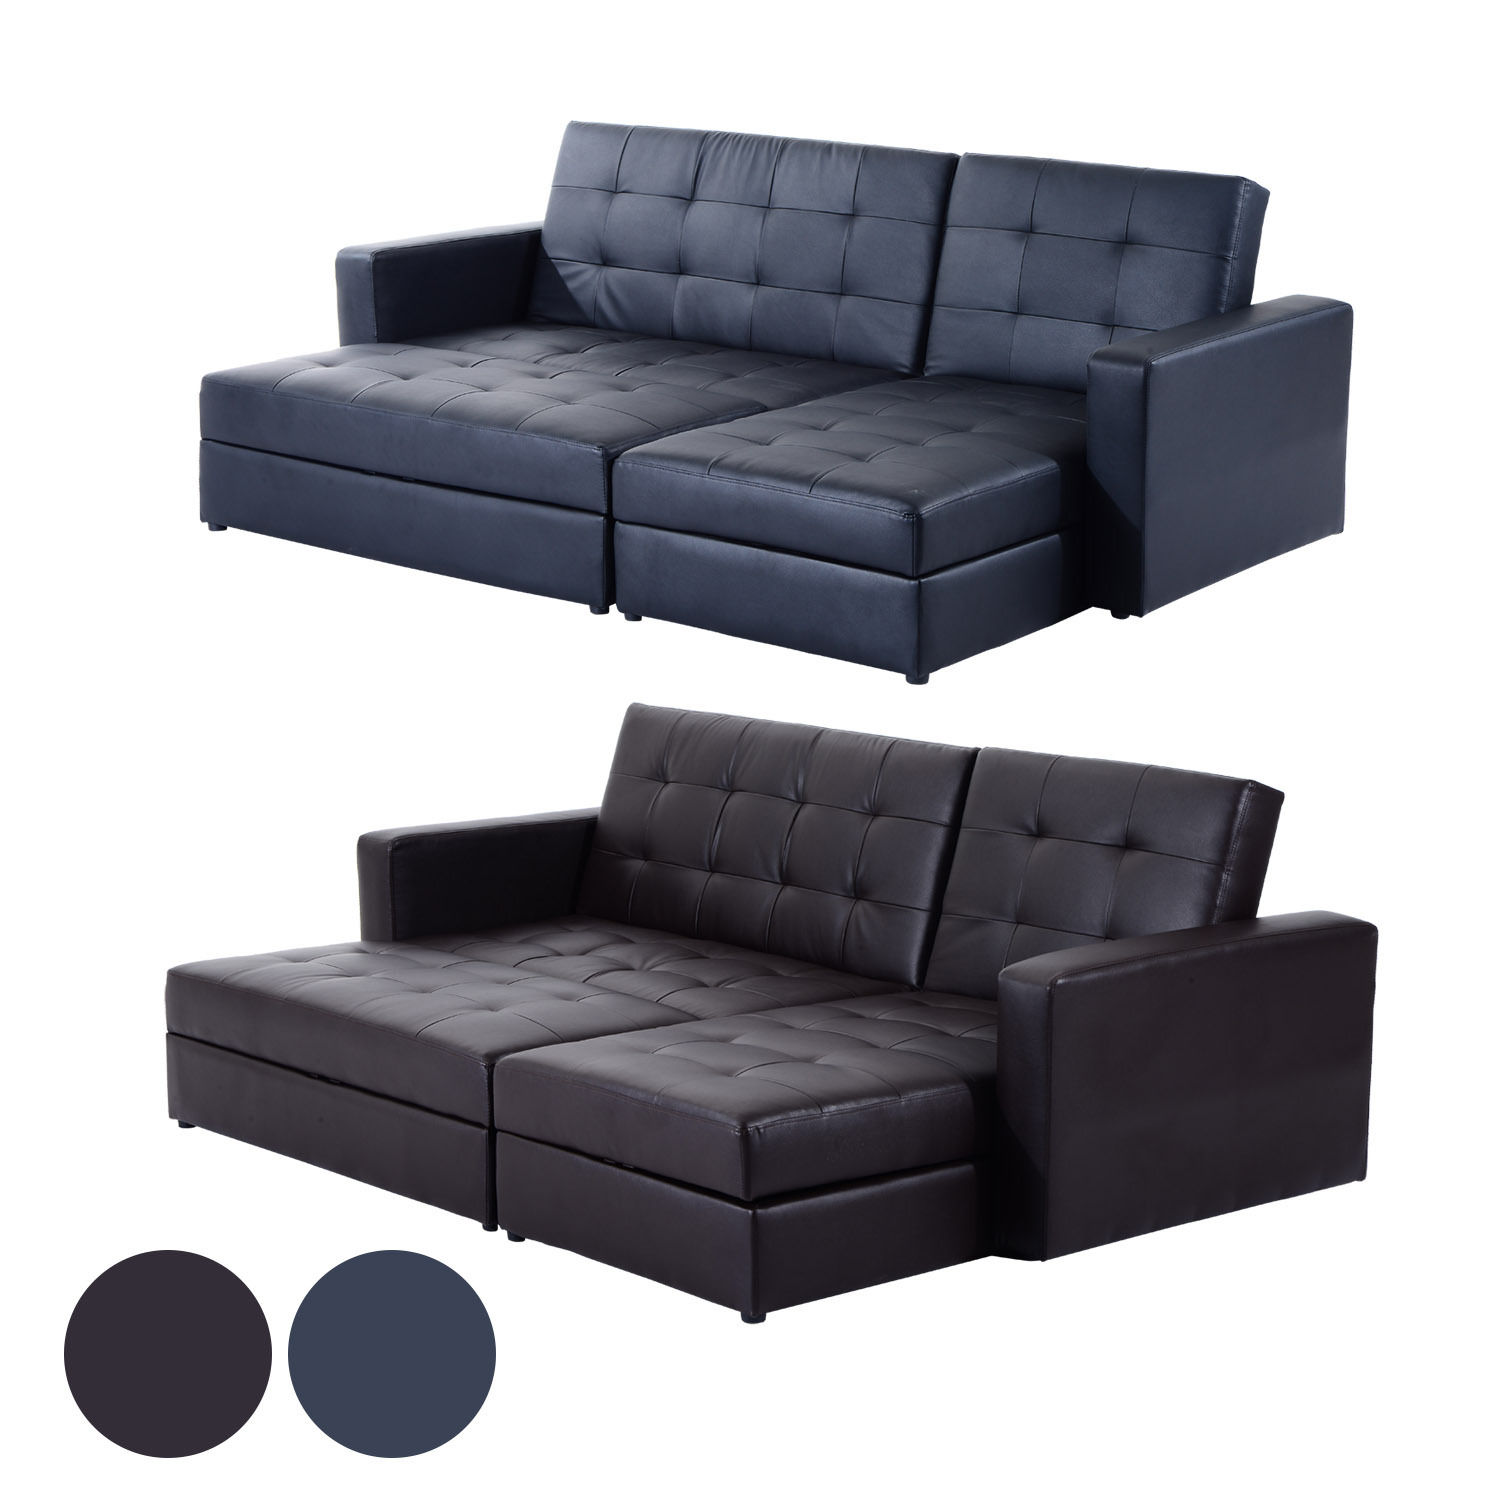 Superb Details About Sofa Bed Storage Sleeper Chaise Loveseat Couch Sectional Living Room Furniture Pabps2019 Chair Design Images Pabps2019Com